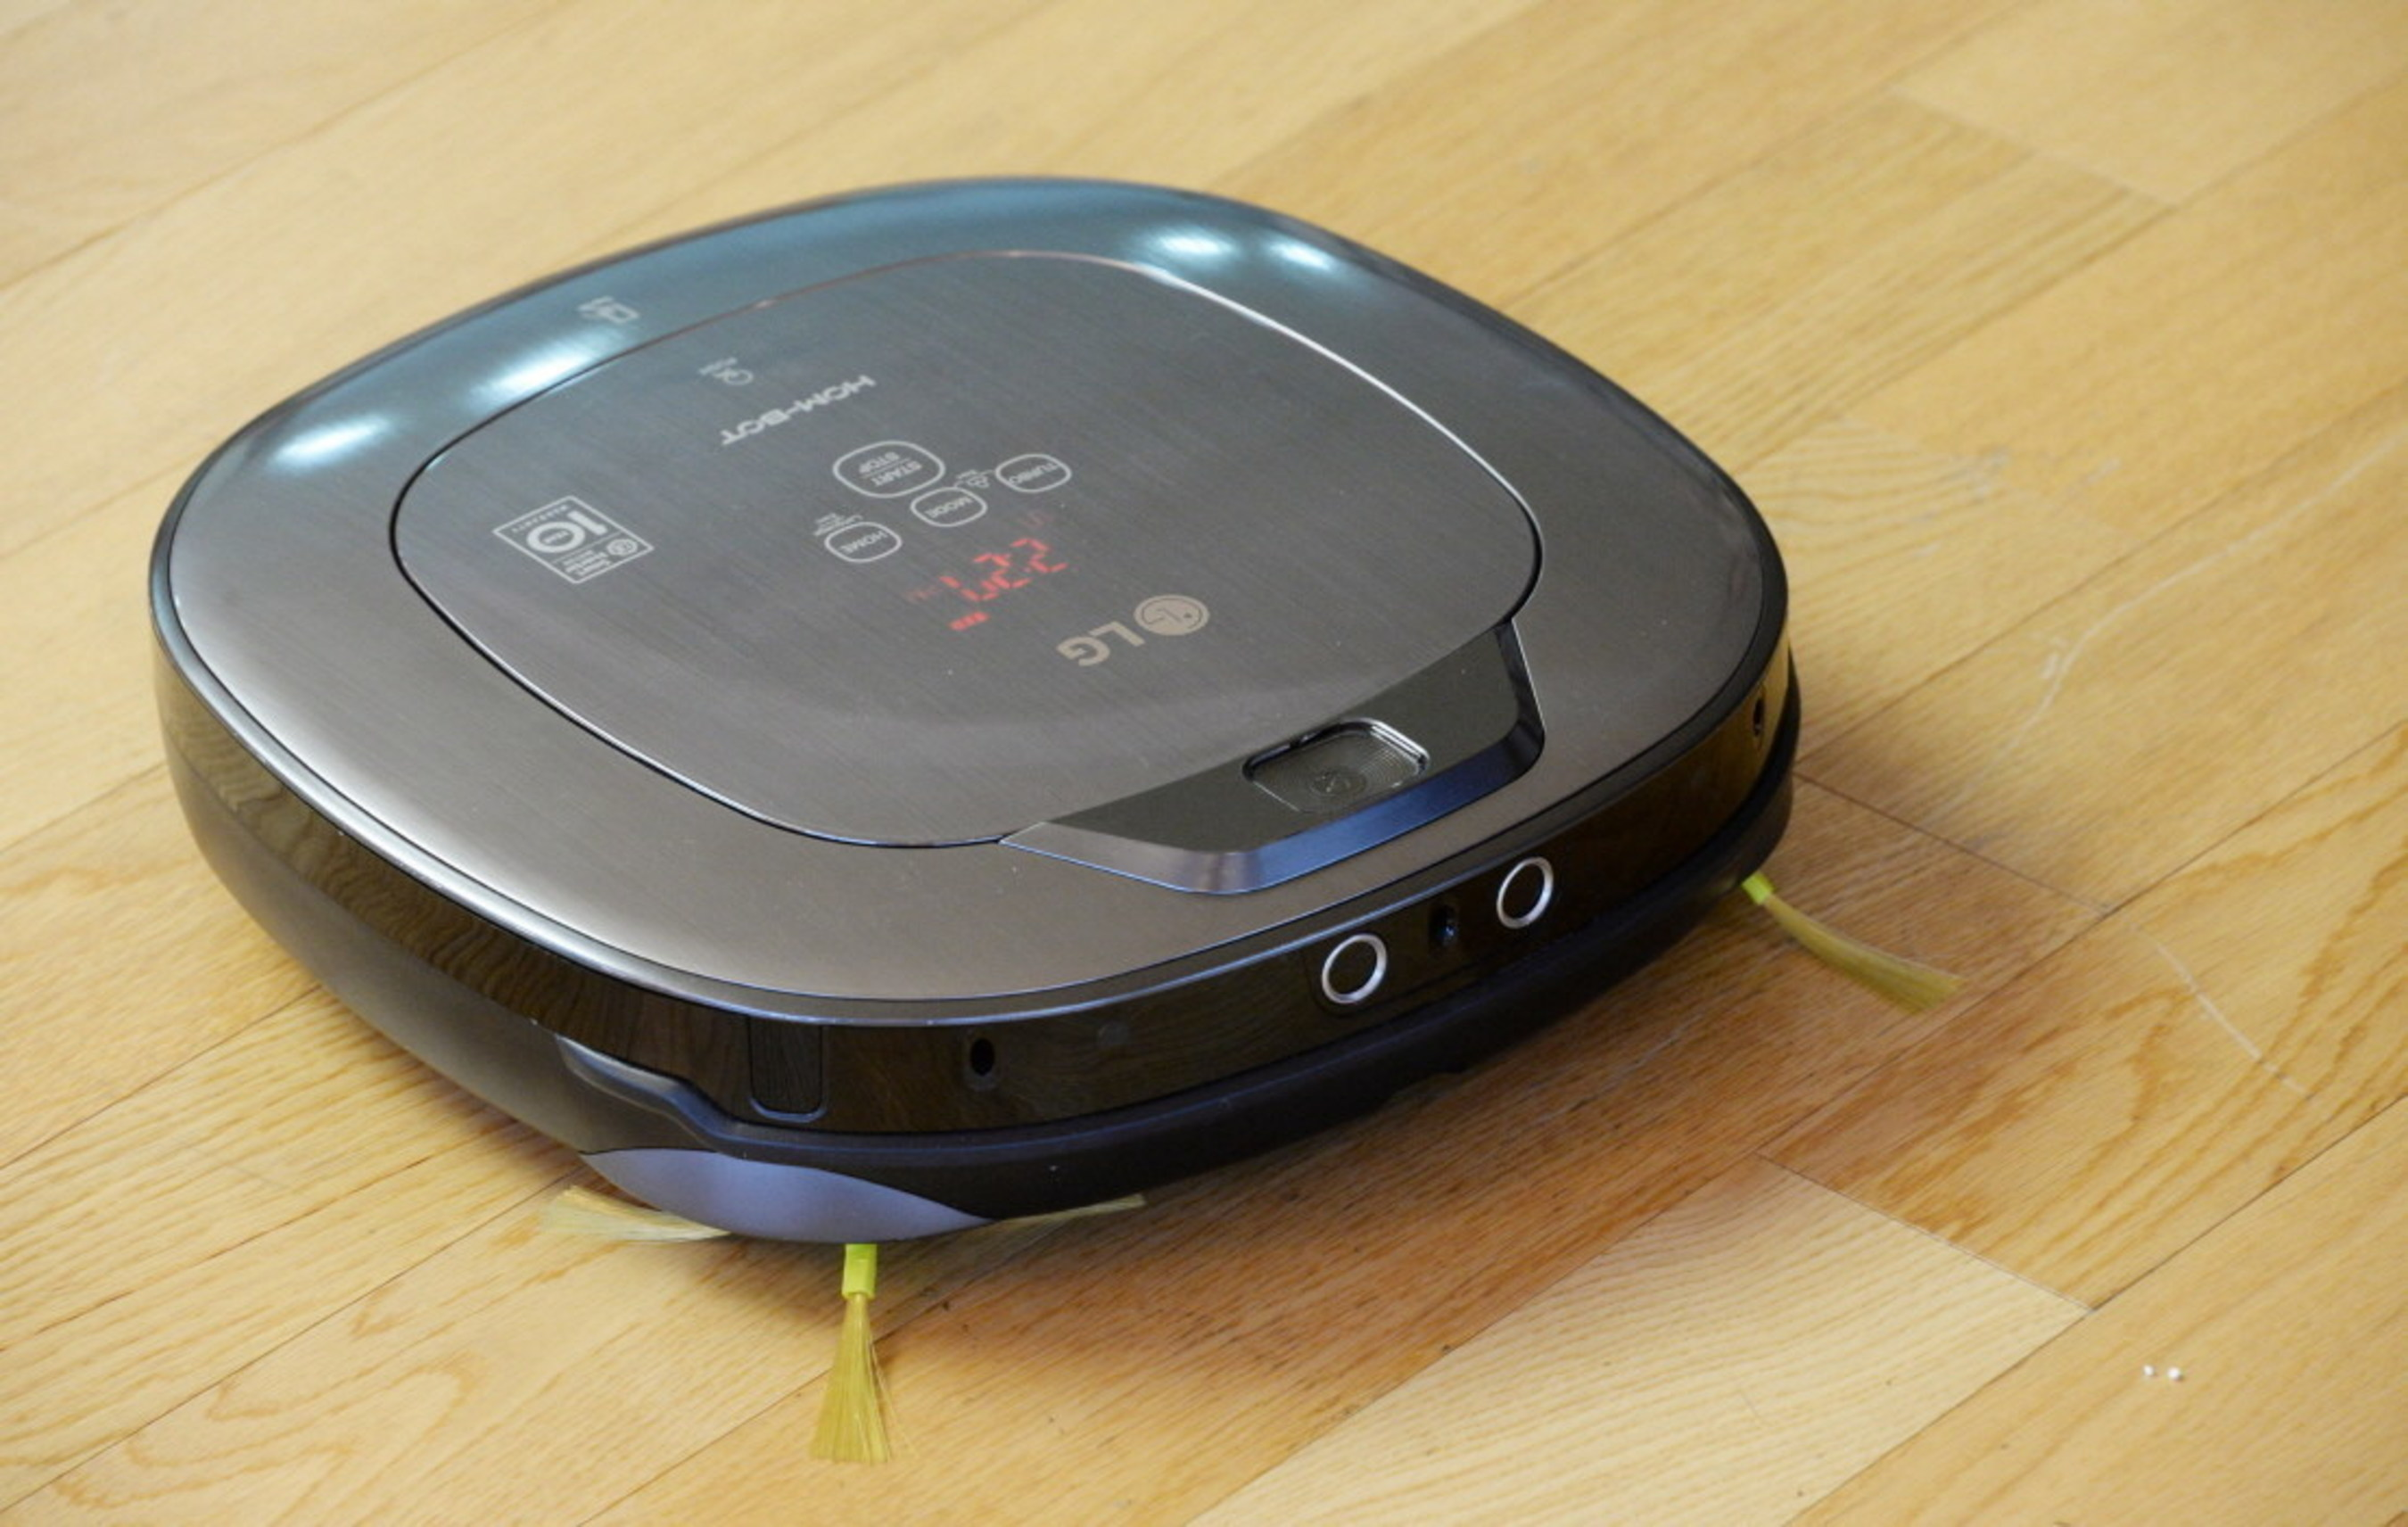 LG Electronics will unveil an upgraded lineup of its CordZero(TM) collection at CES 2016, which will be headlined by HOM-BOT Turbo+.